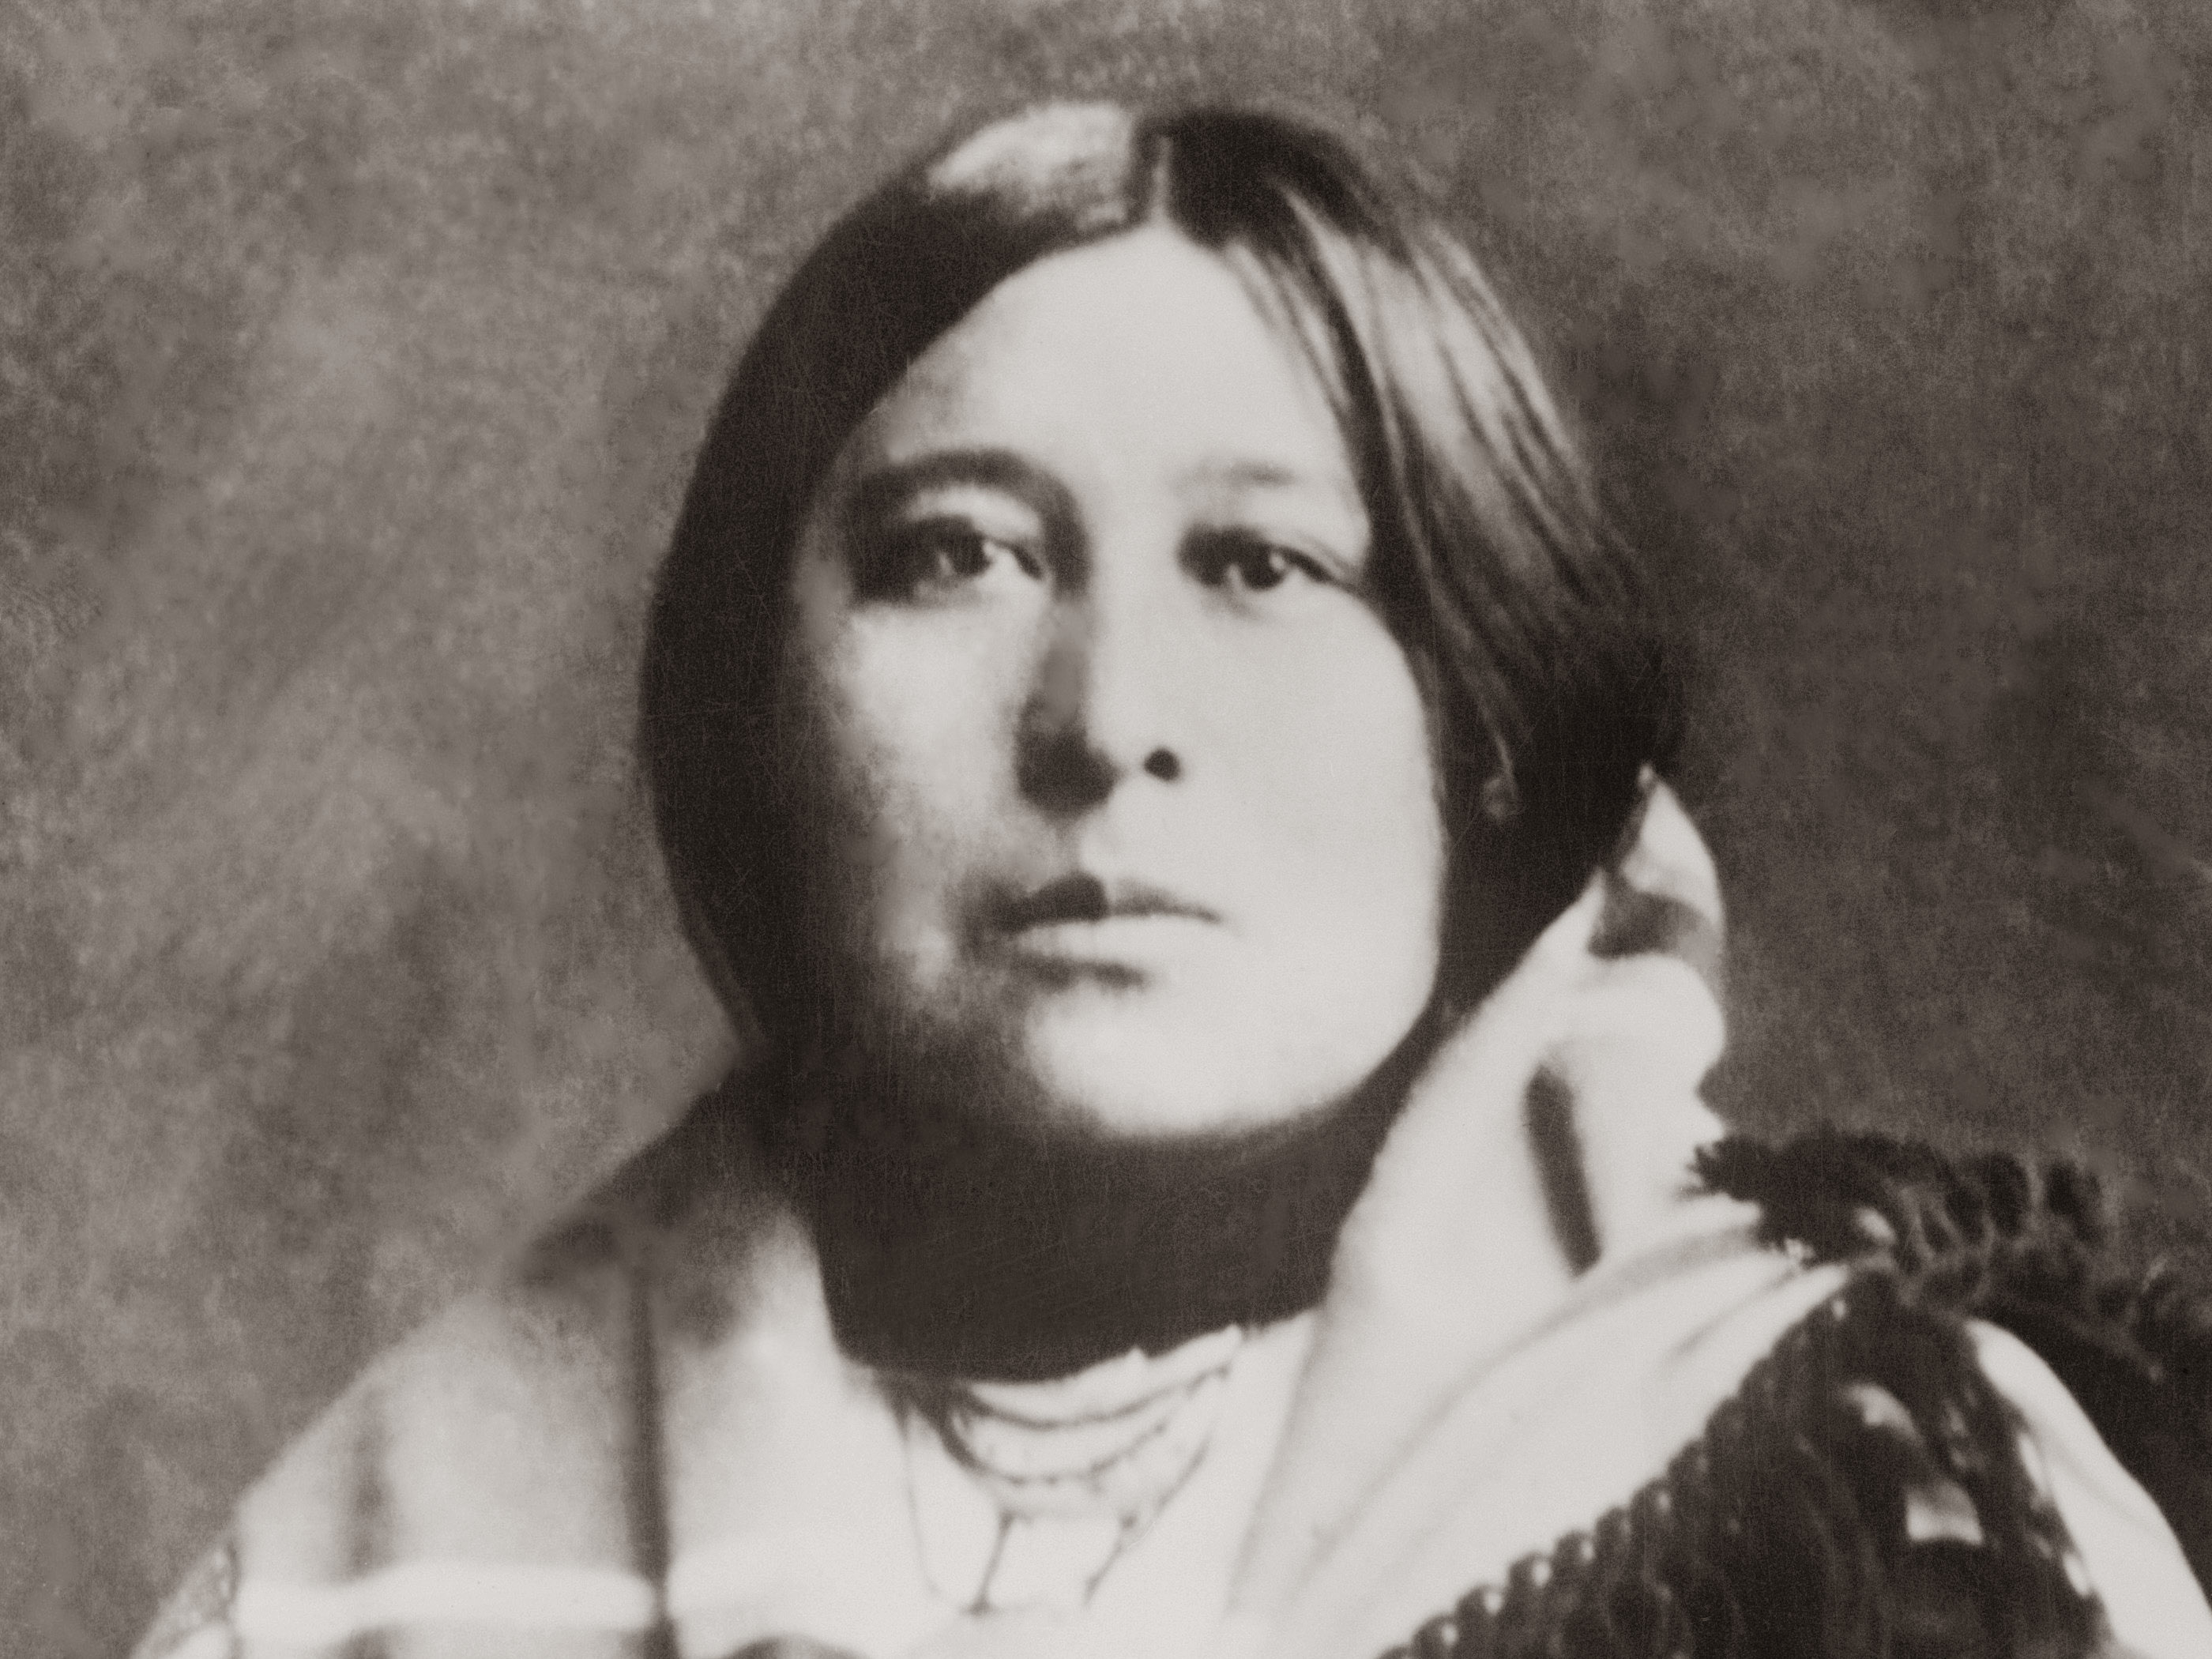 Who will play an Osage woman in a film about the Osage people?